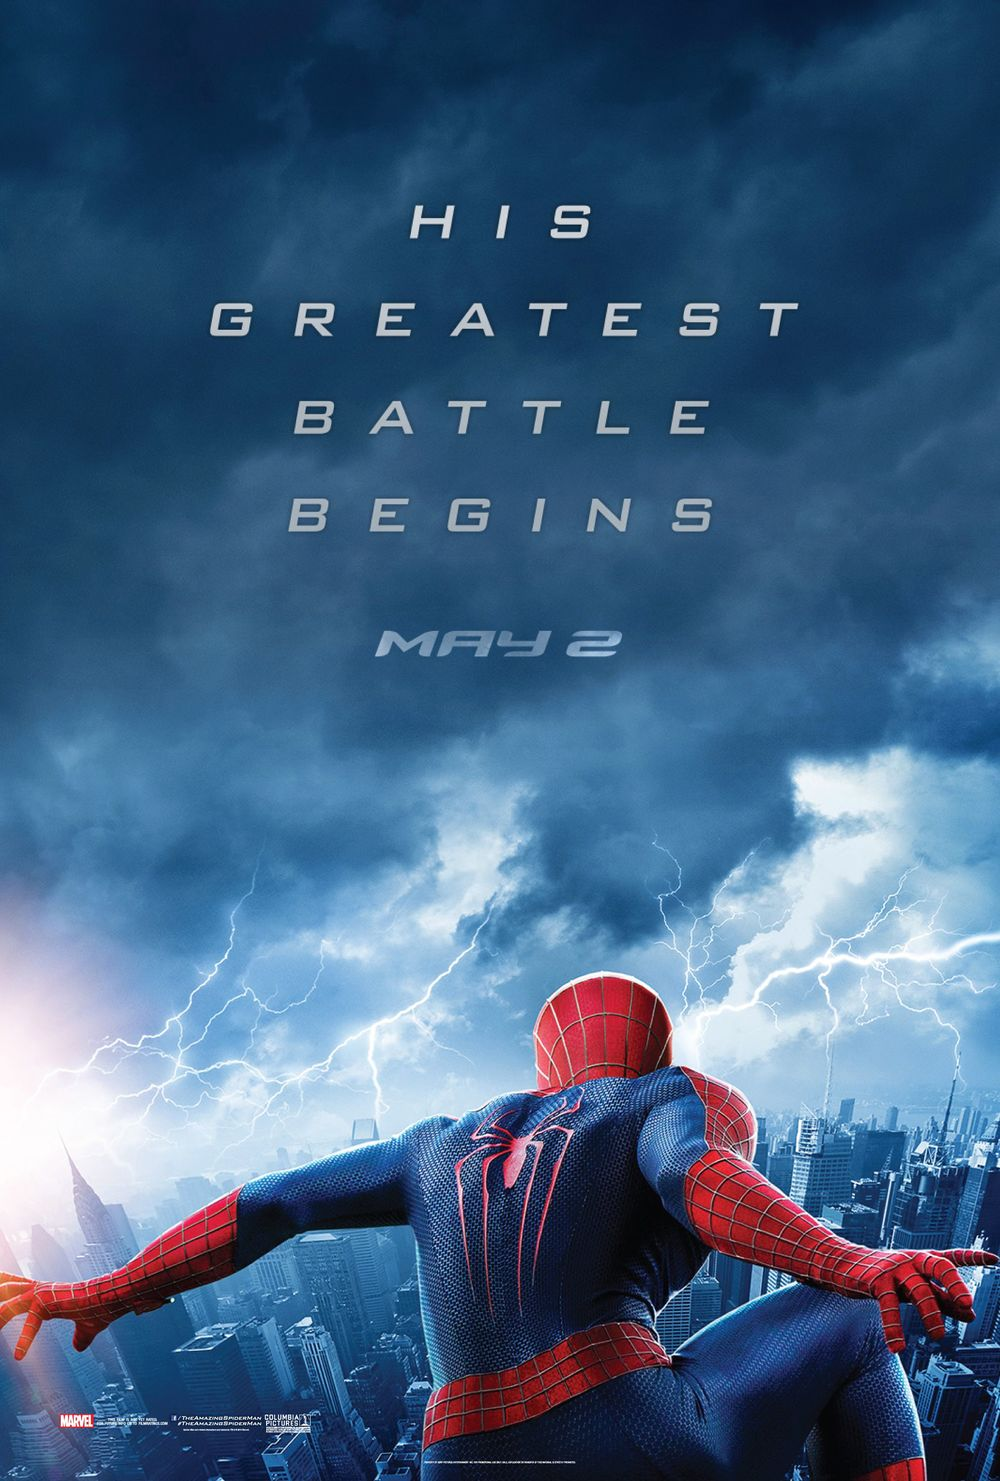 the_amazing_spider-man_2_teaser_poster_20131217_1463870249.jpg